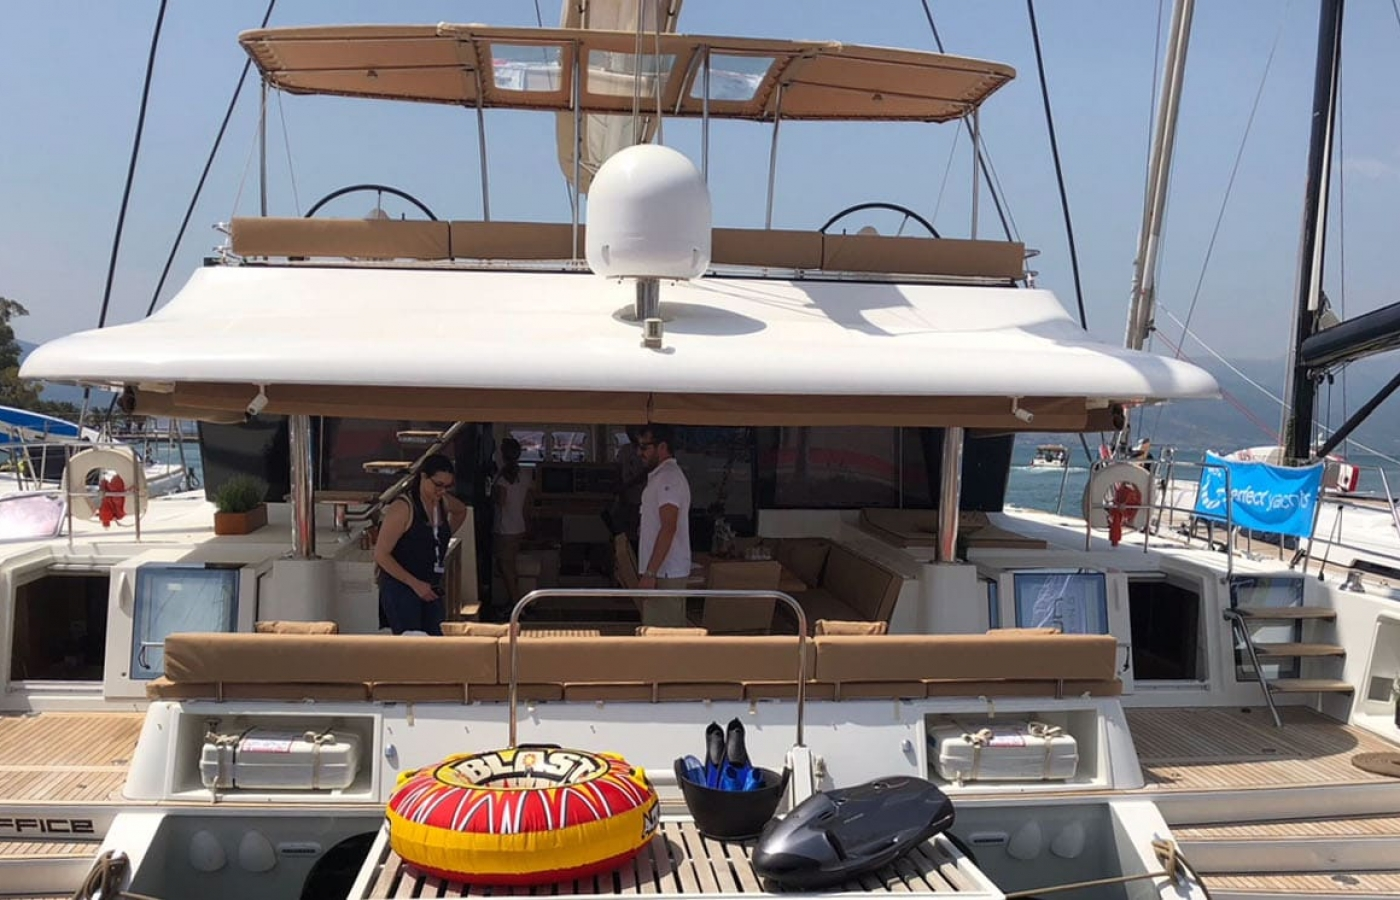 The stern of the Lagoon 62